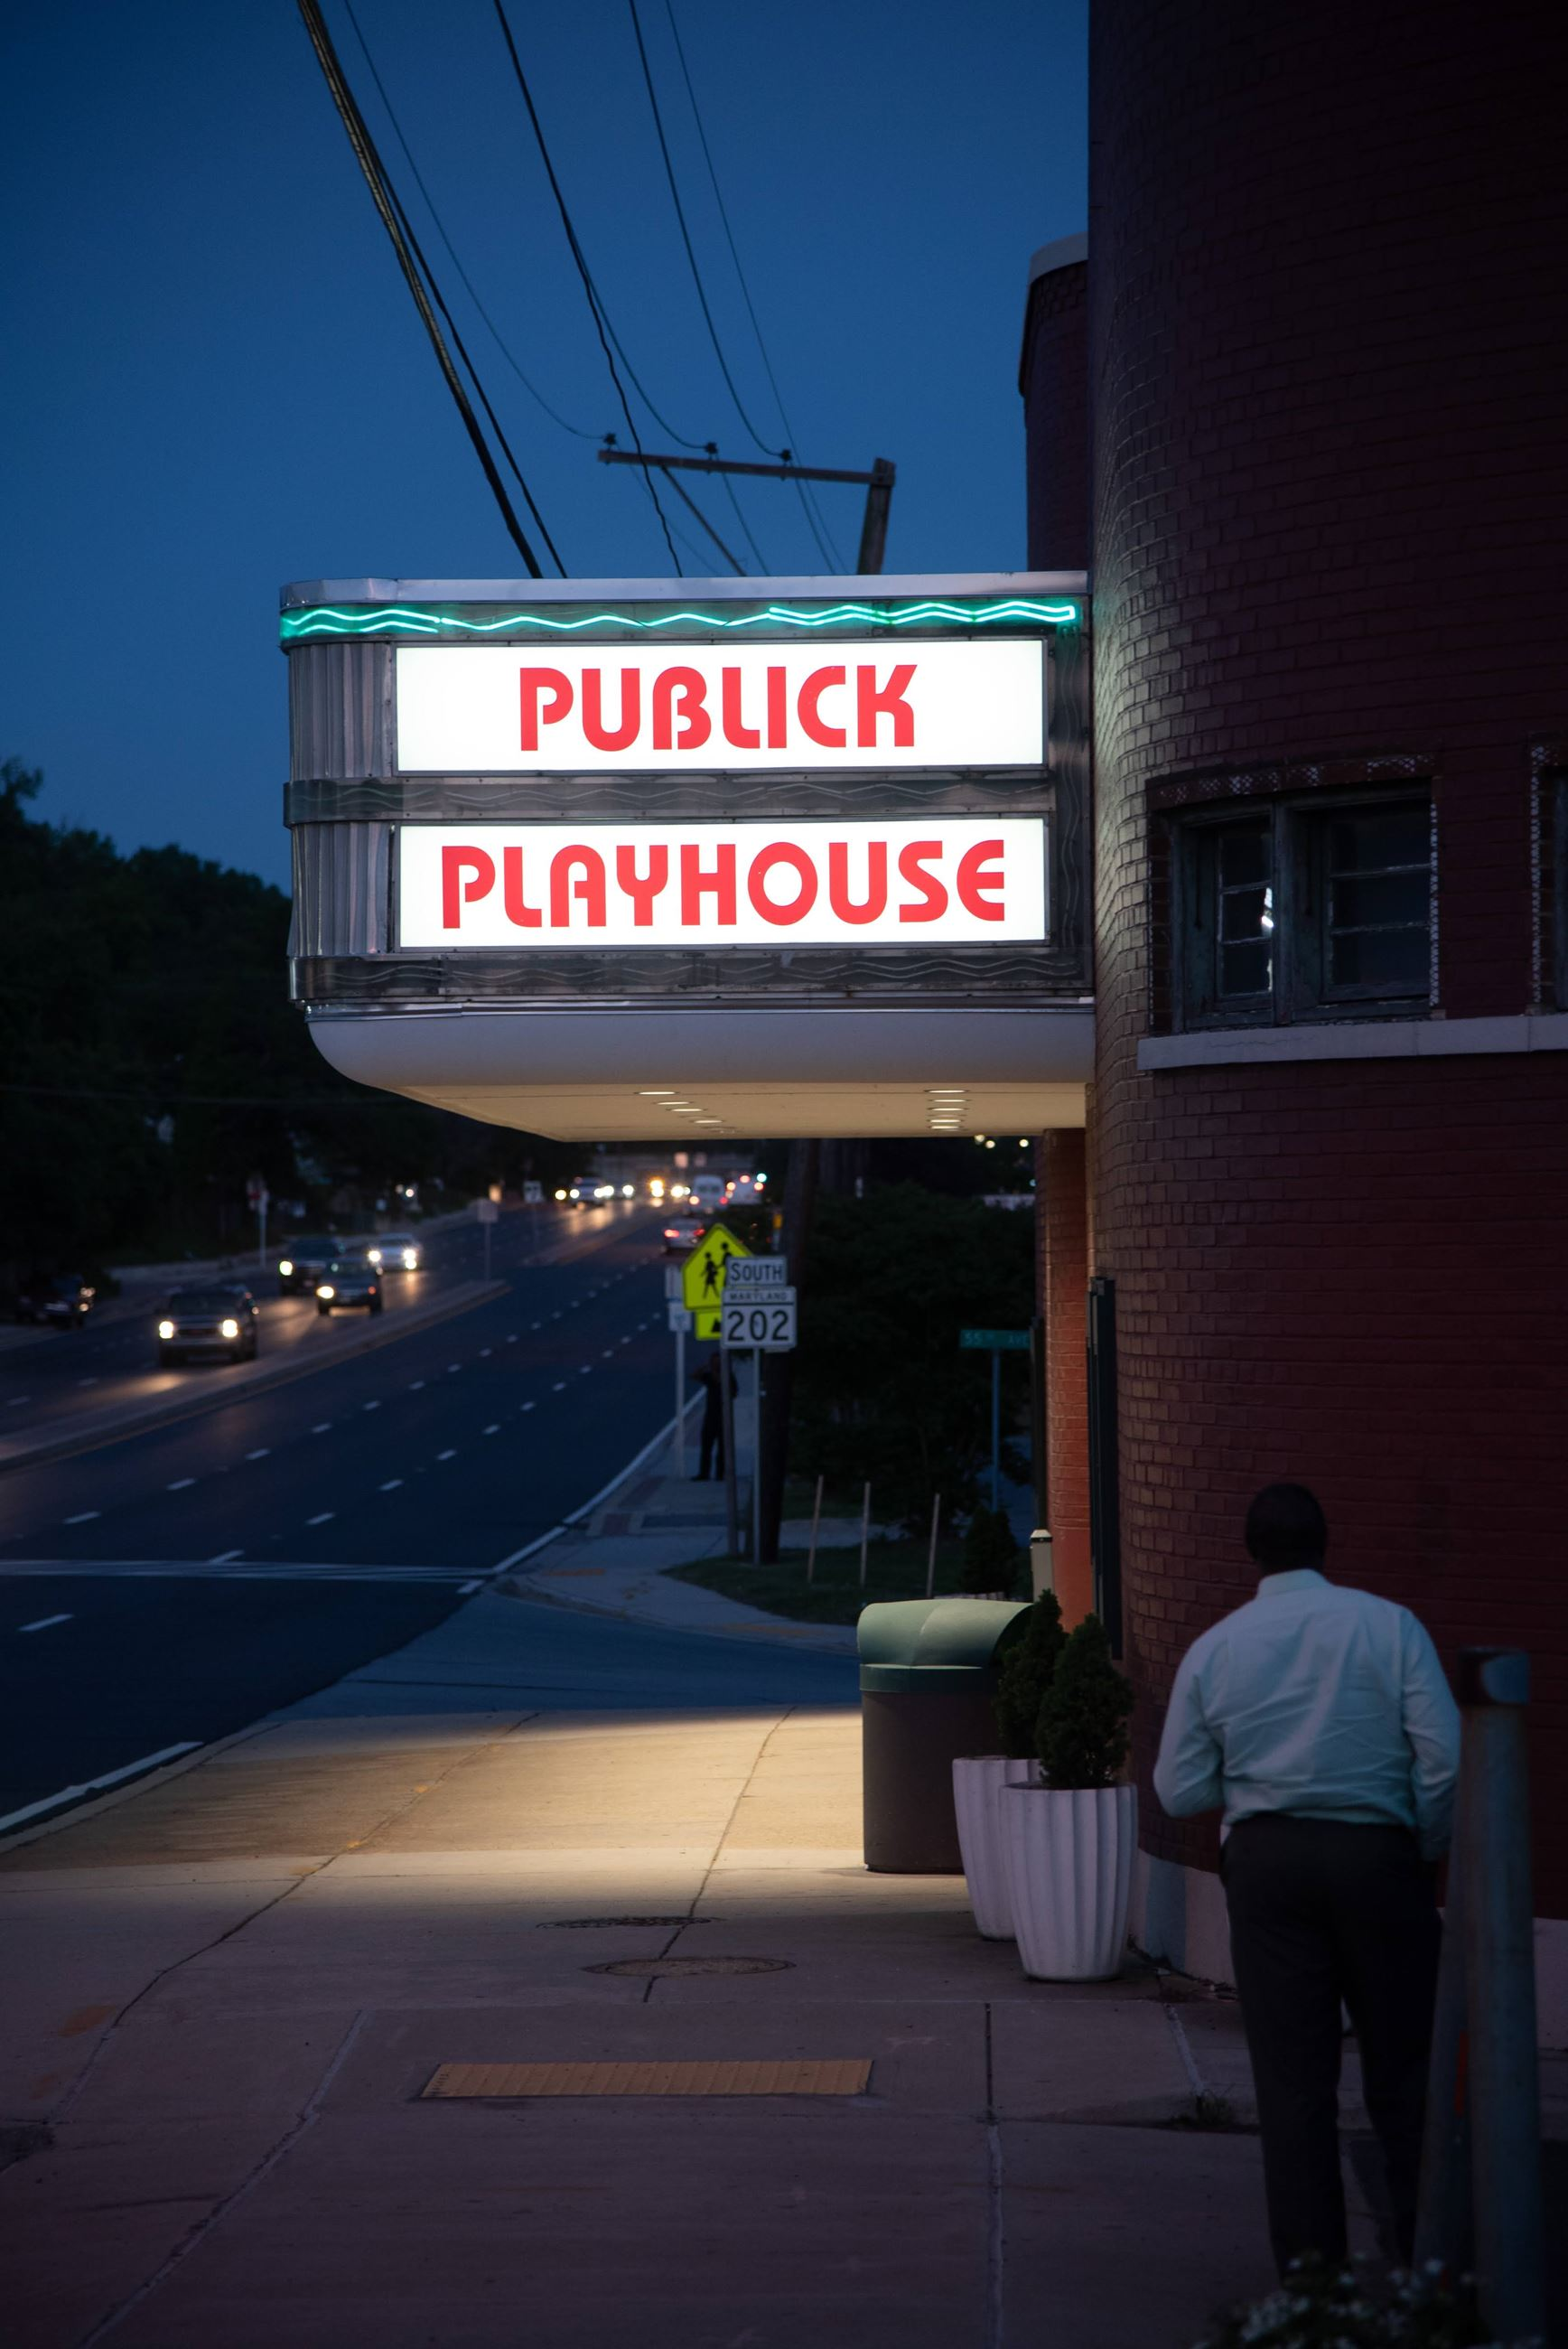 Publick Playhouse